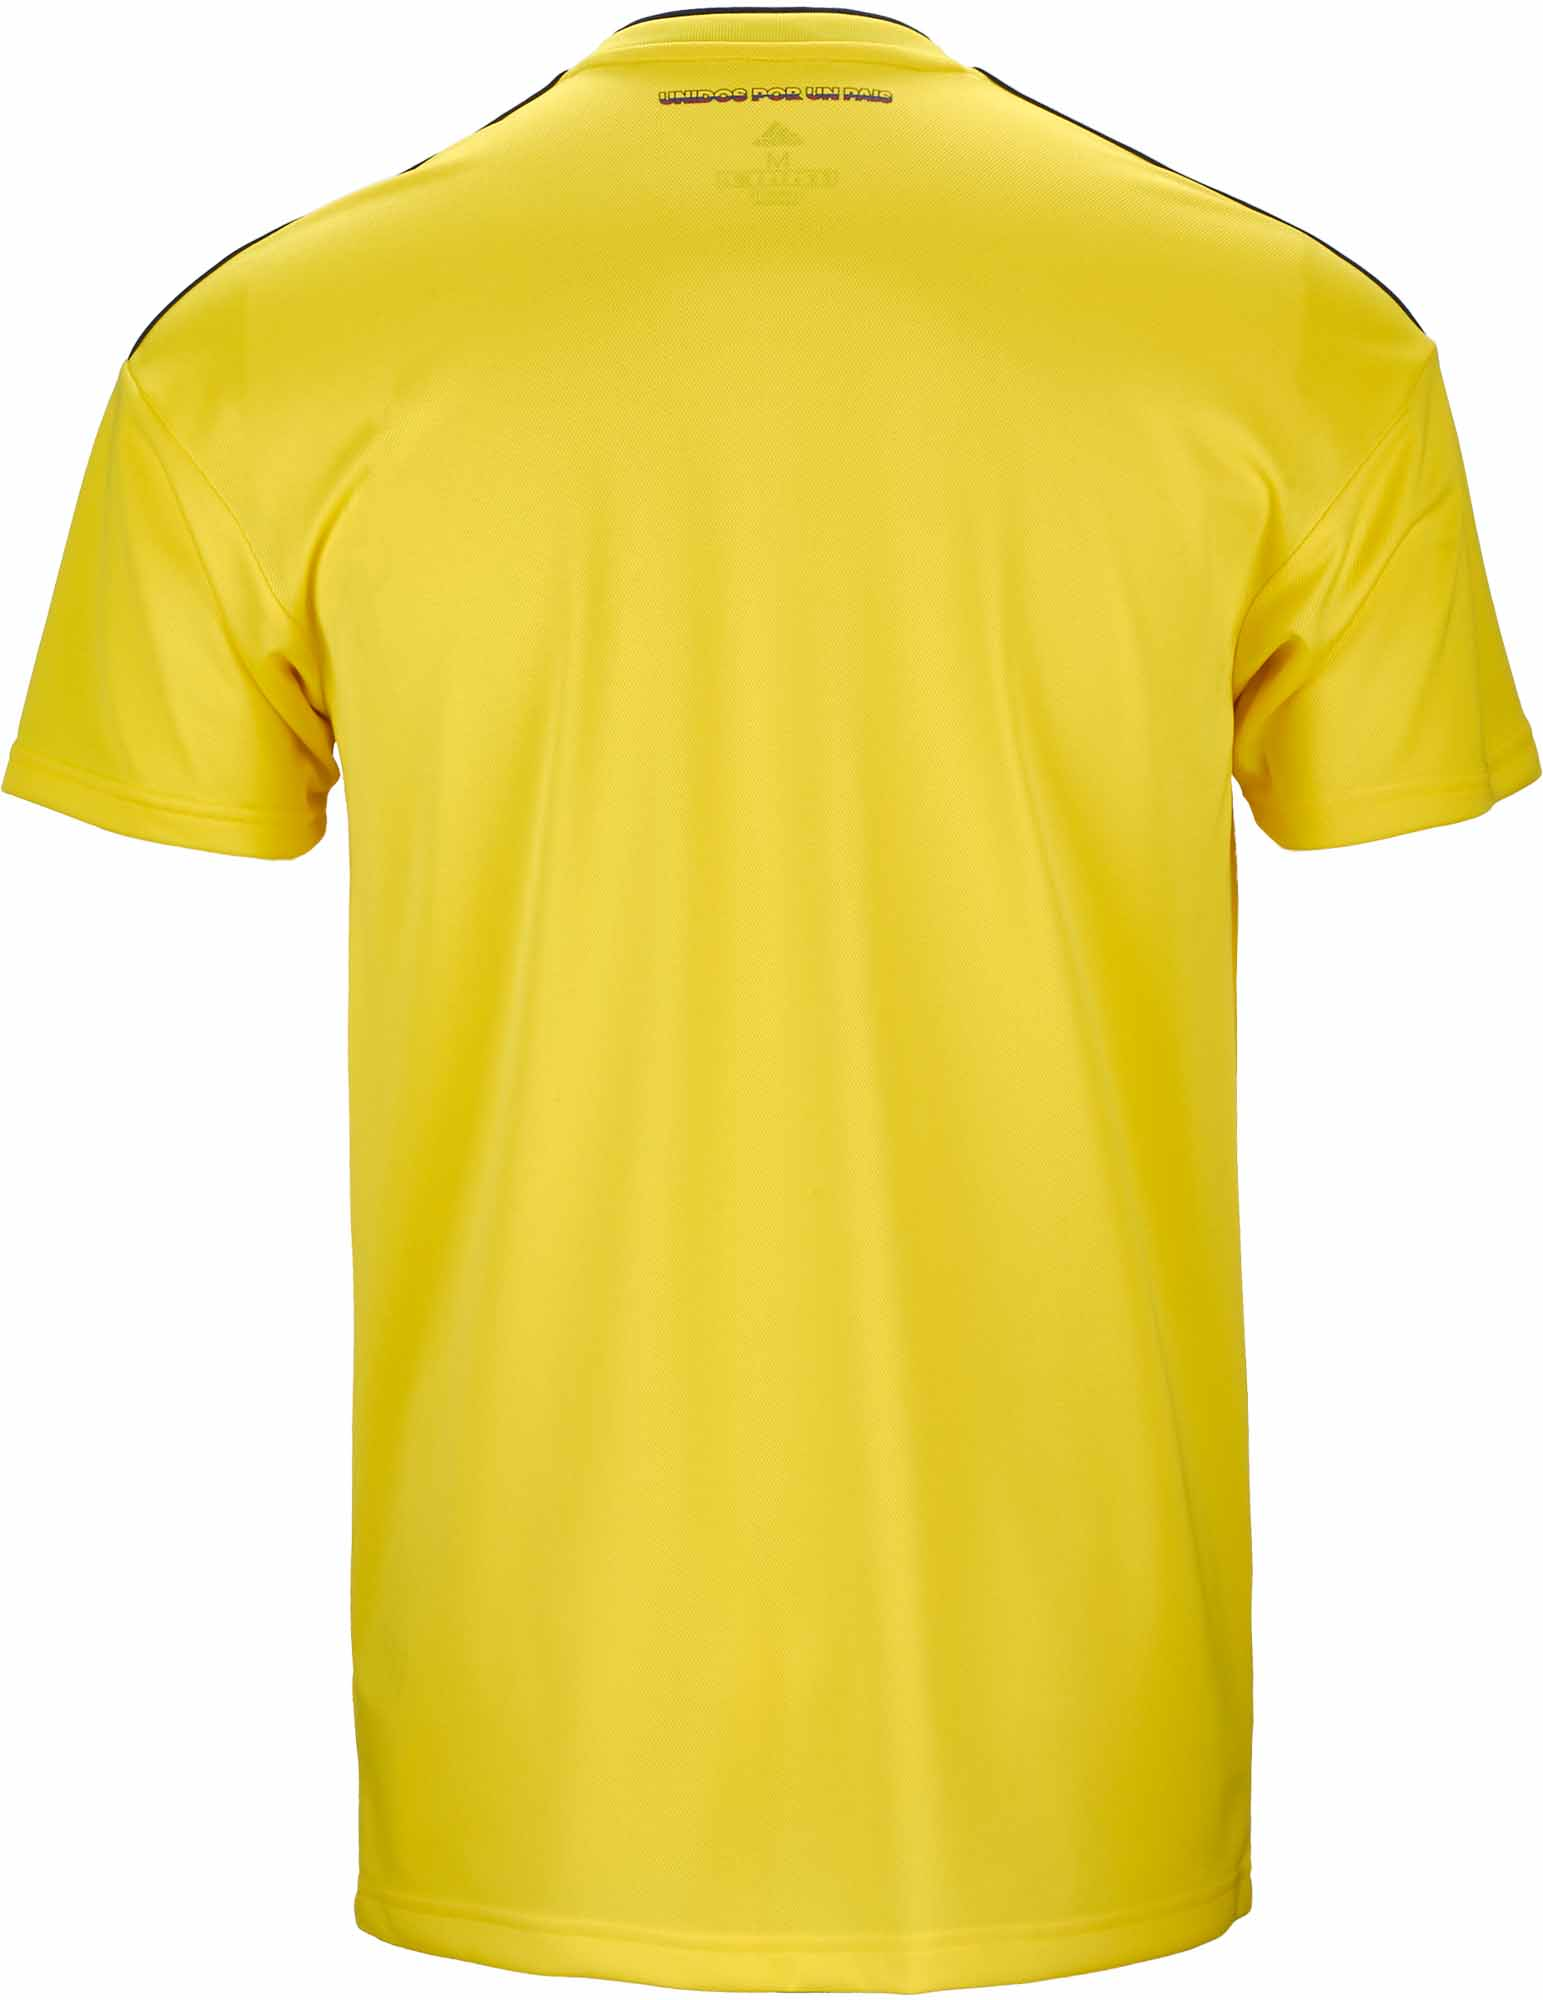 huge discount 8e650 b07f7 2018/19 adidas Colombia Home Jersey - Soccer Master